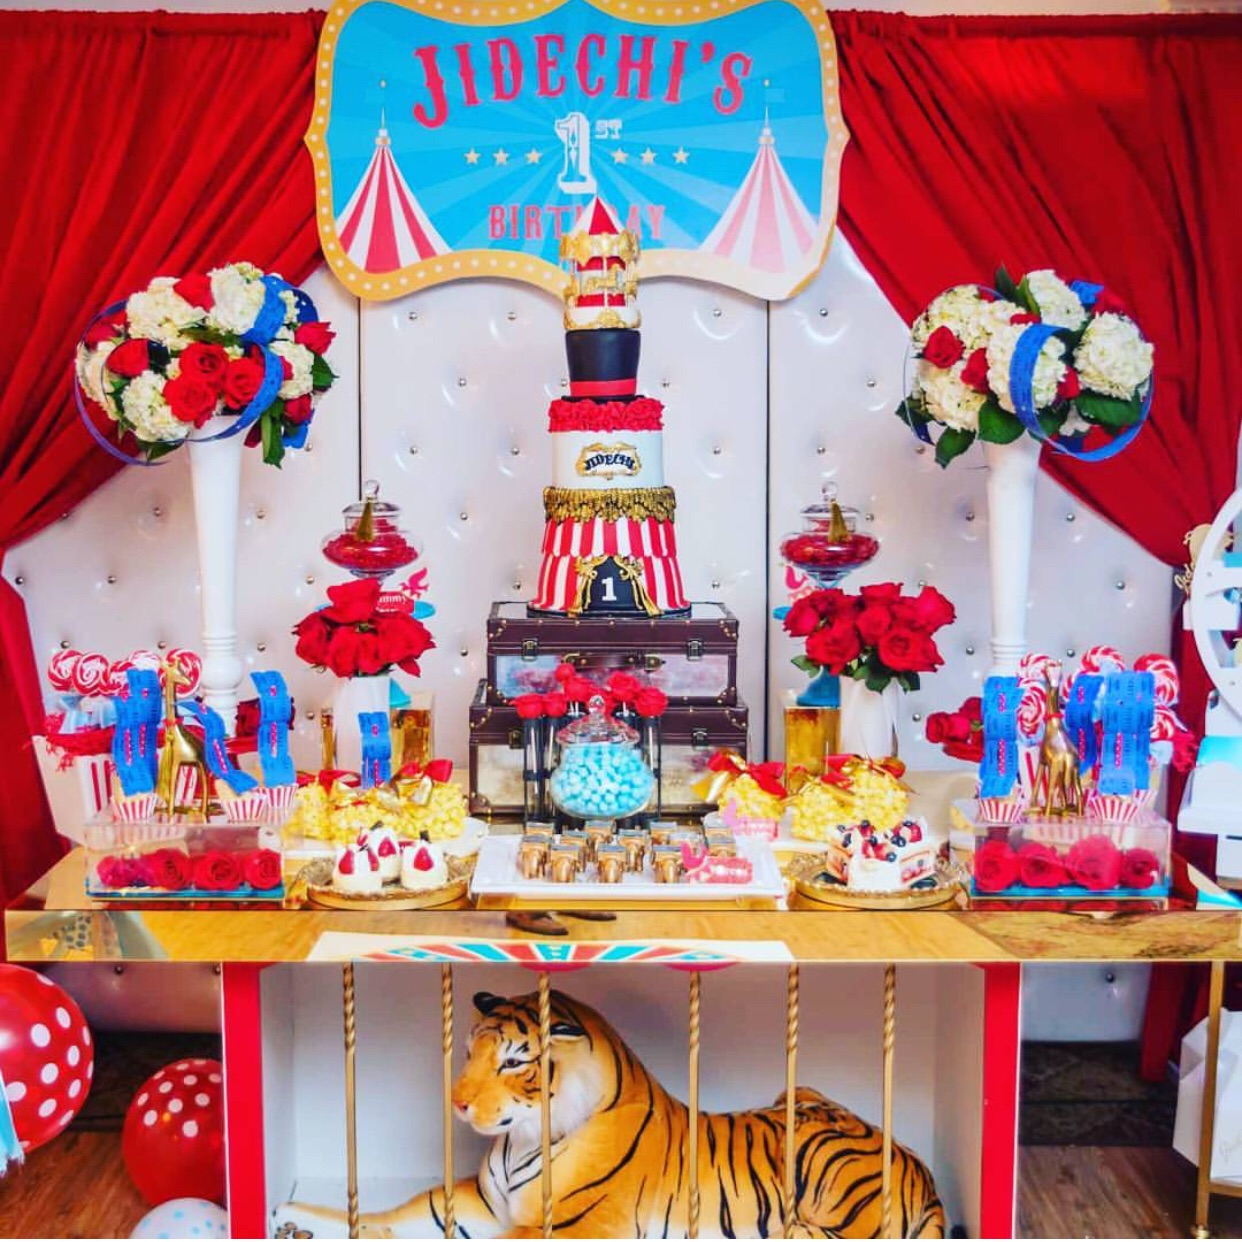 The dessert buffet complete with a tiger in a cage.